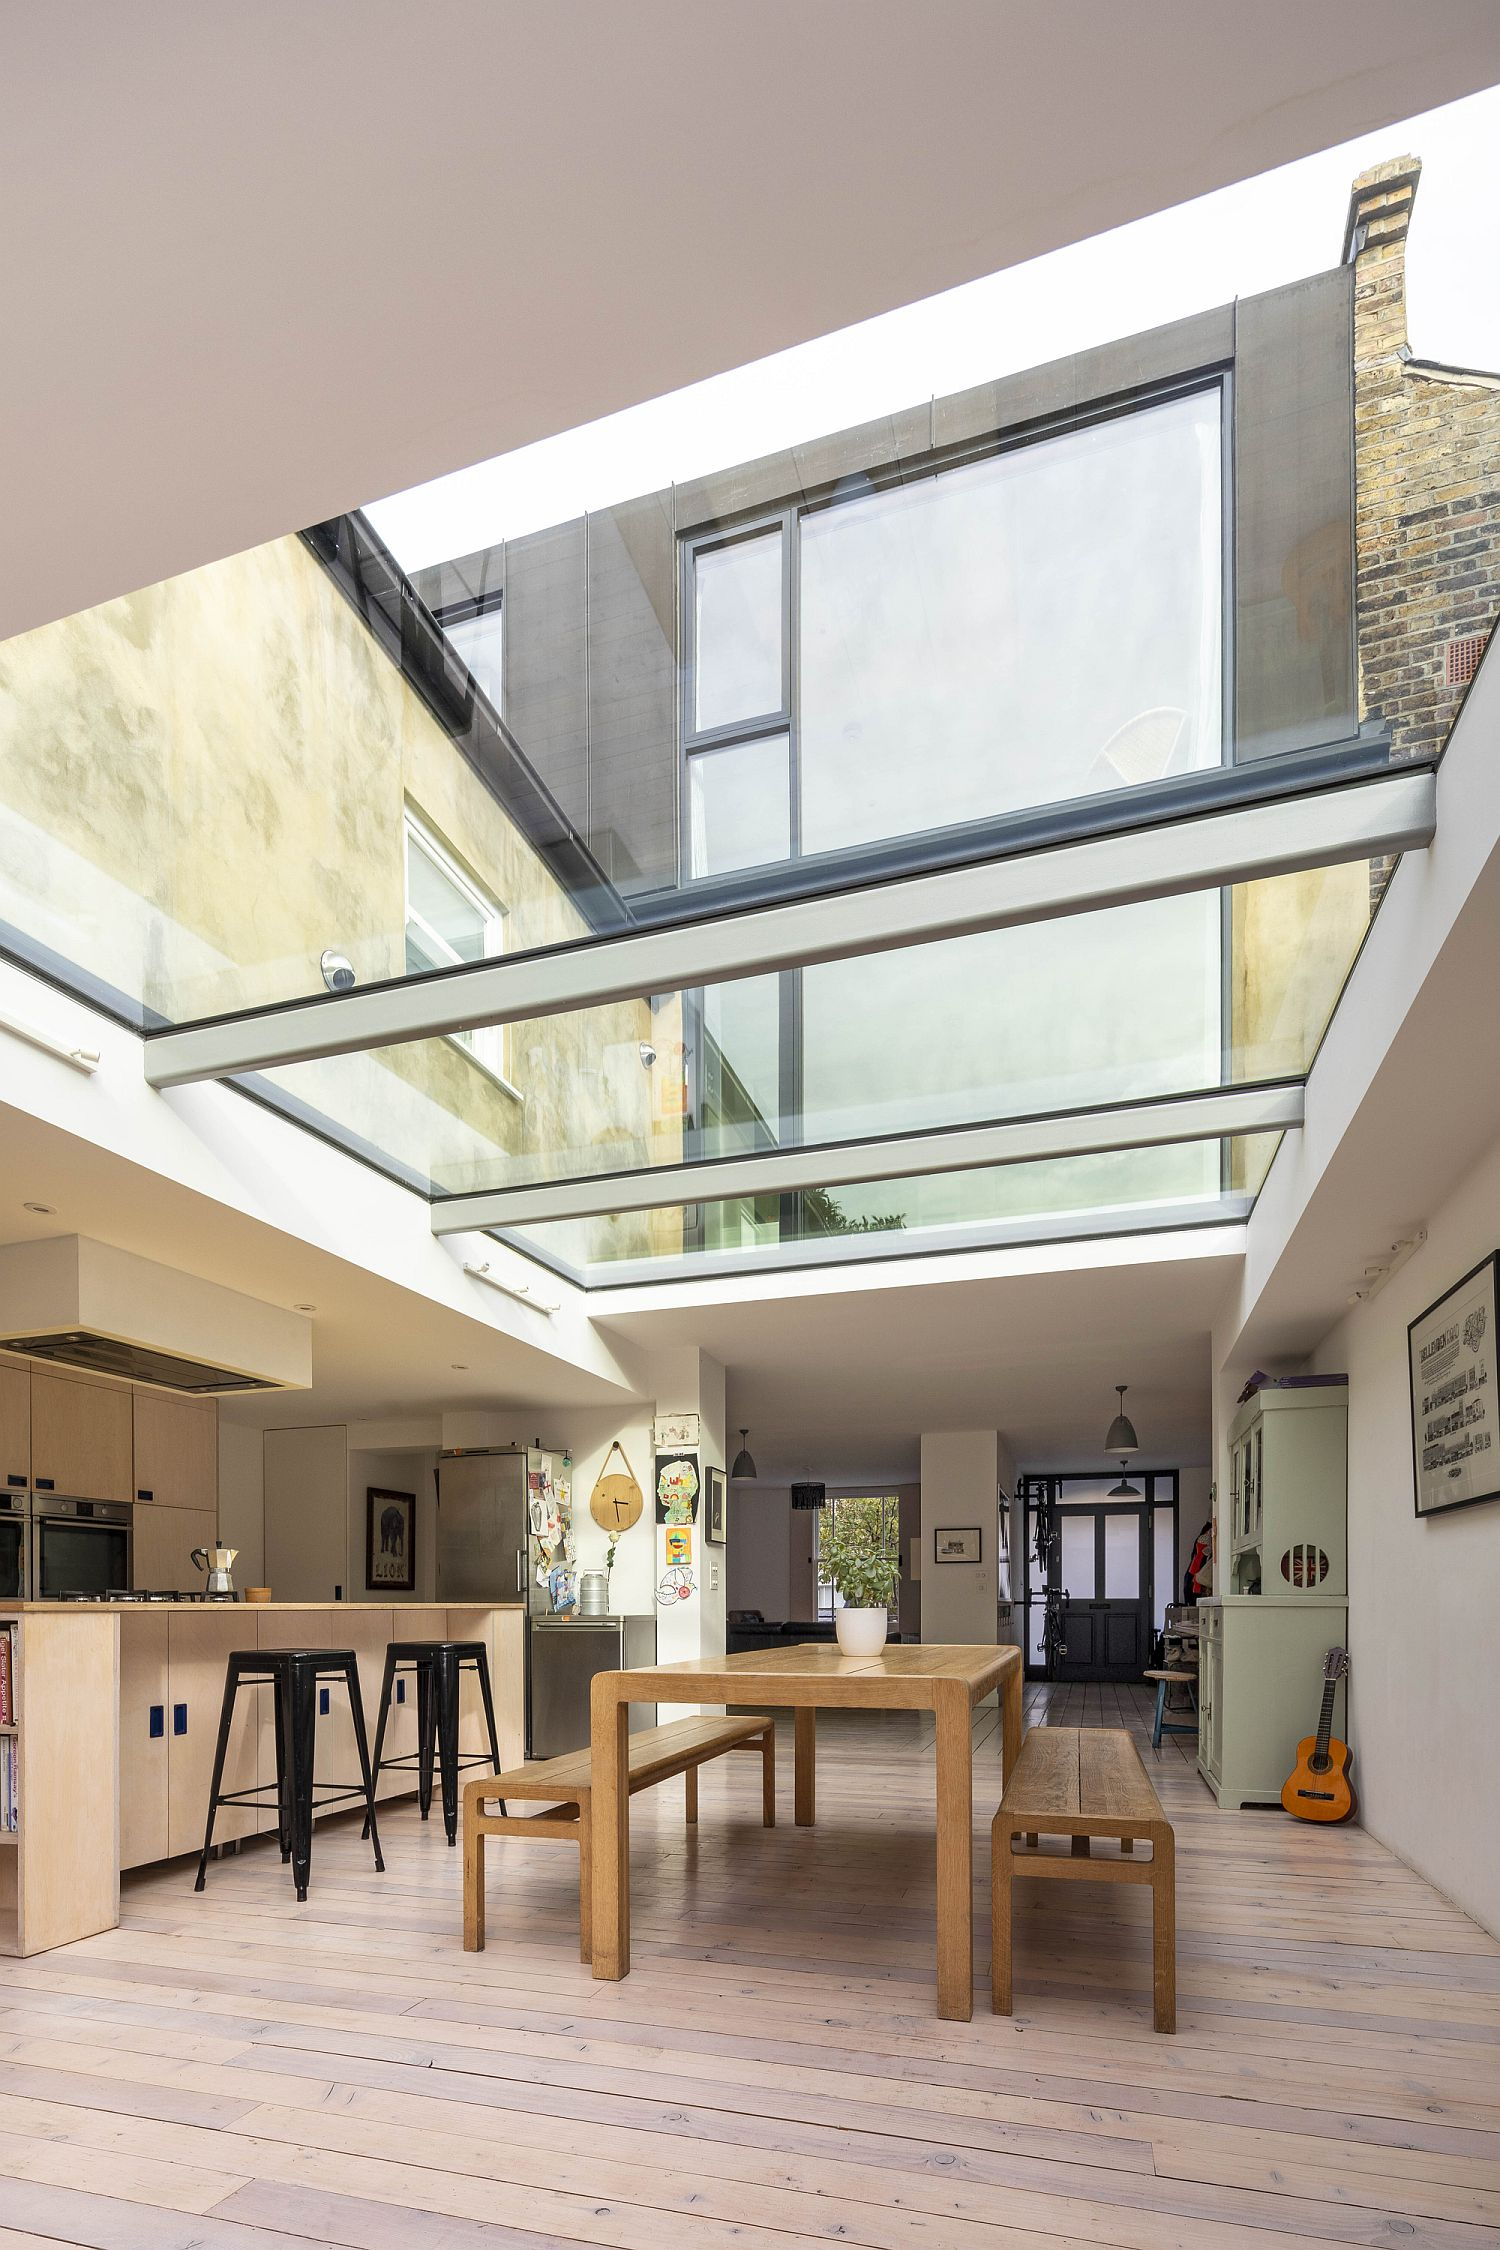 Glass ceilings completely alter the appeal of the Coach House